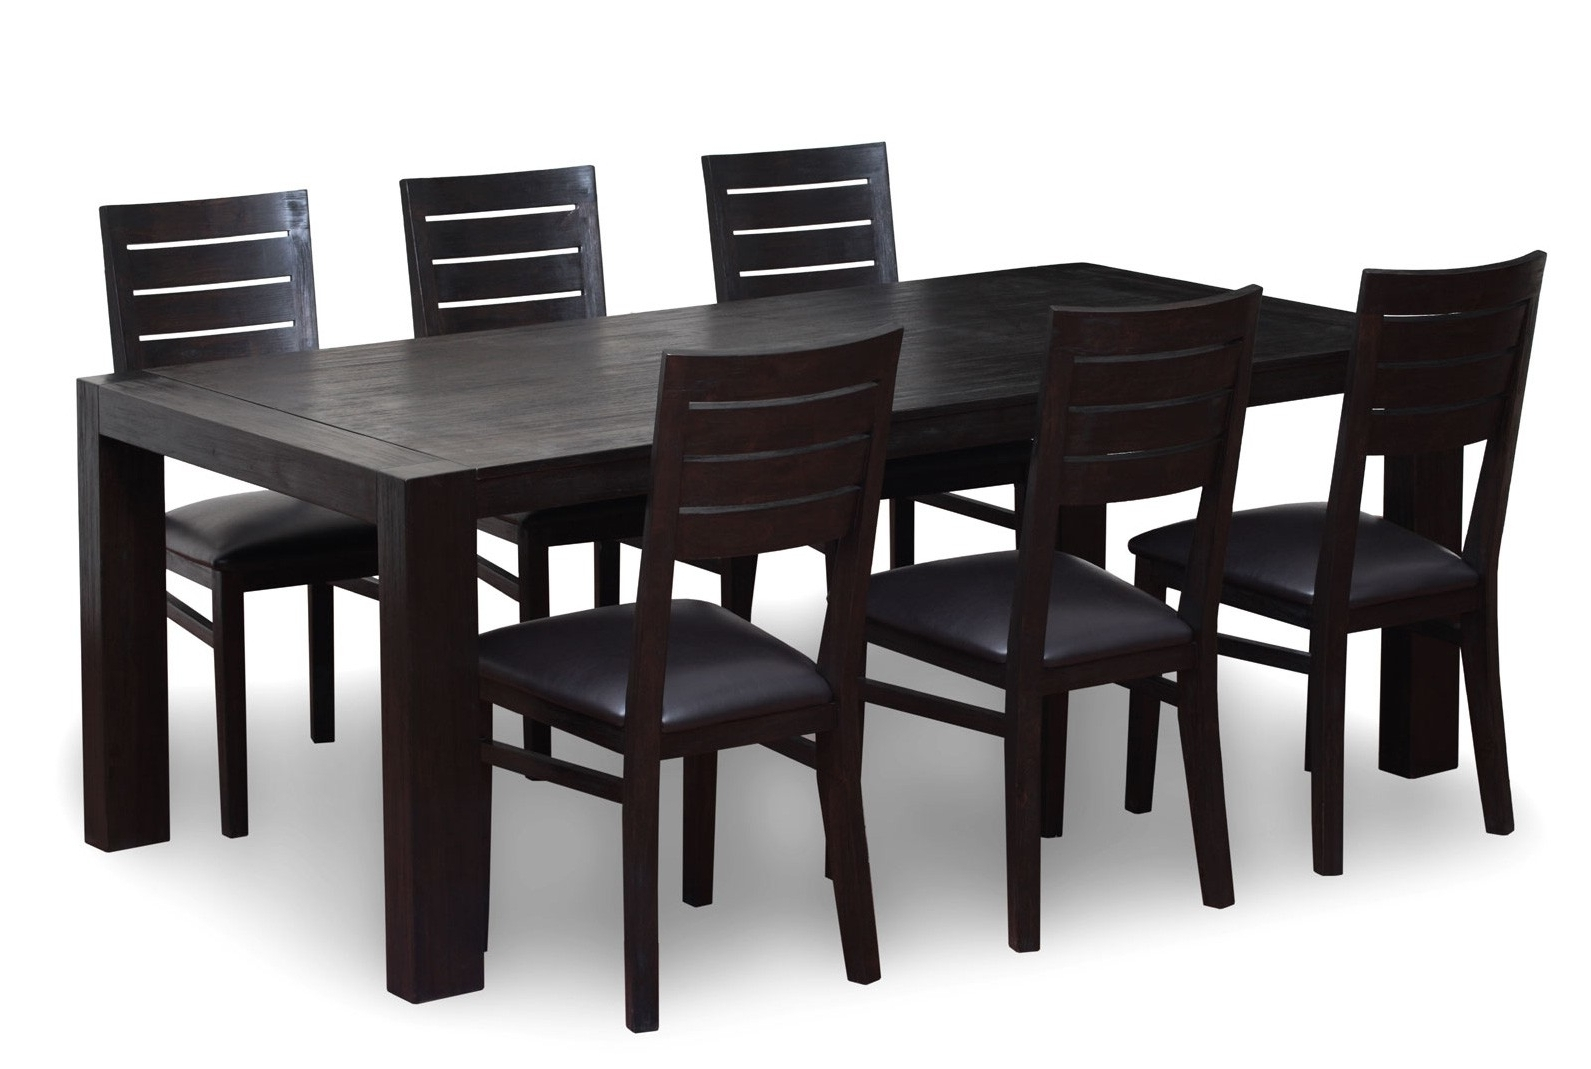 Most Recently Released 6 Seater Wooden Dining Table Set – Antique Ebony Within Wooden Dining Tables And 6 Chairs (Gallery 13 of 25)